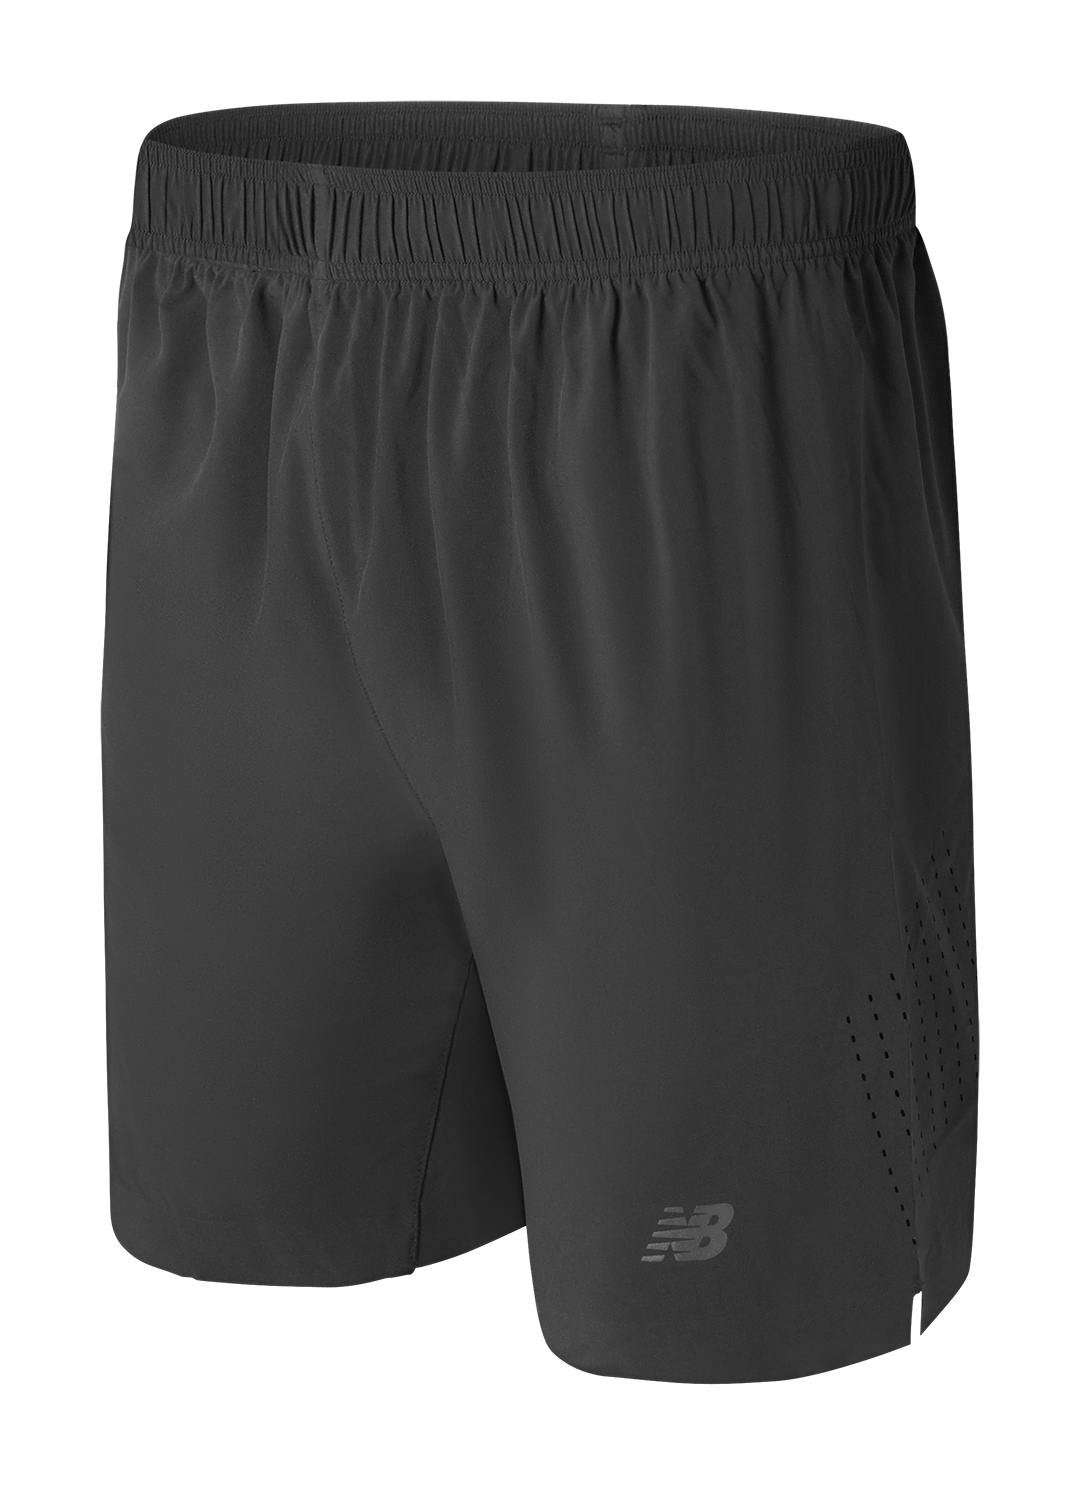 0145_performance-7-inch-woven-short_MIL107_LG_BLK_Front copy.jpg